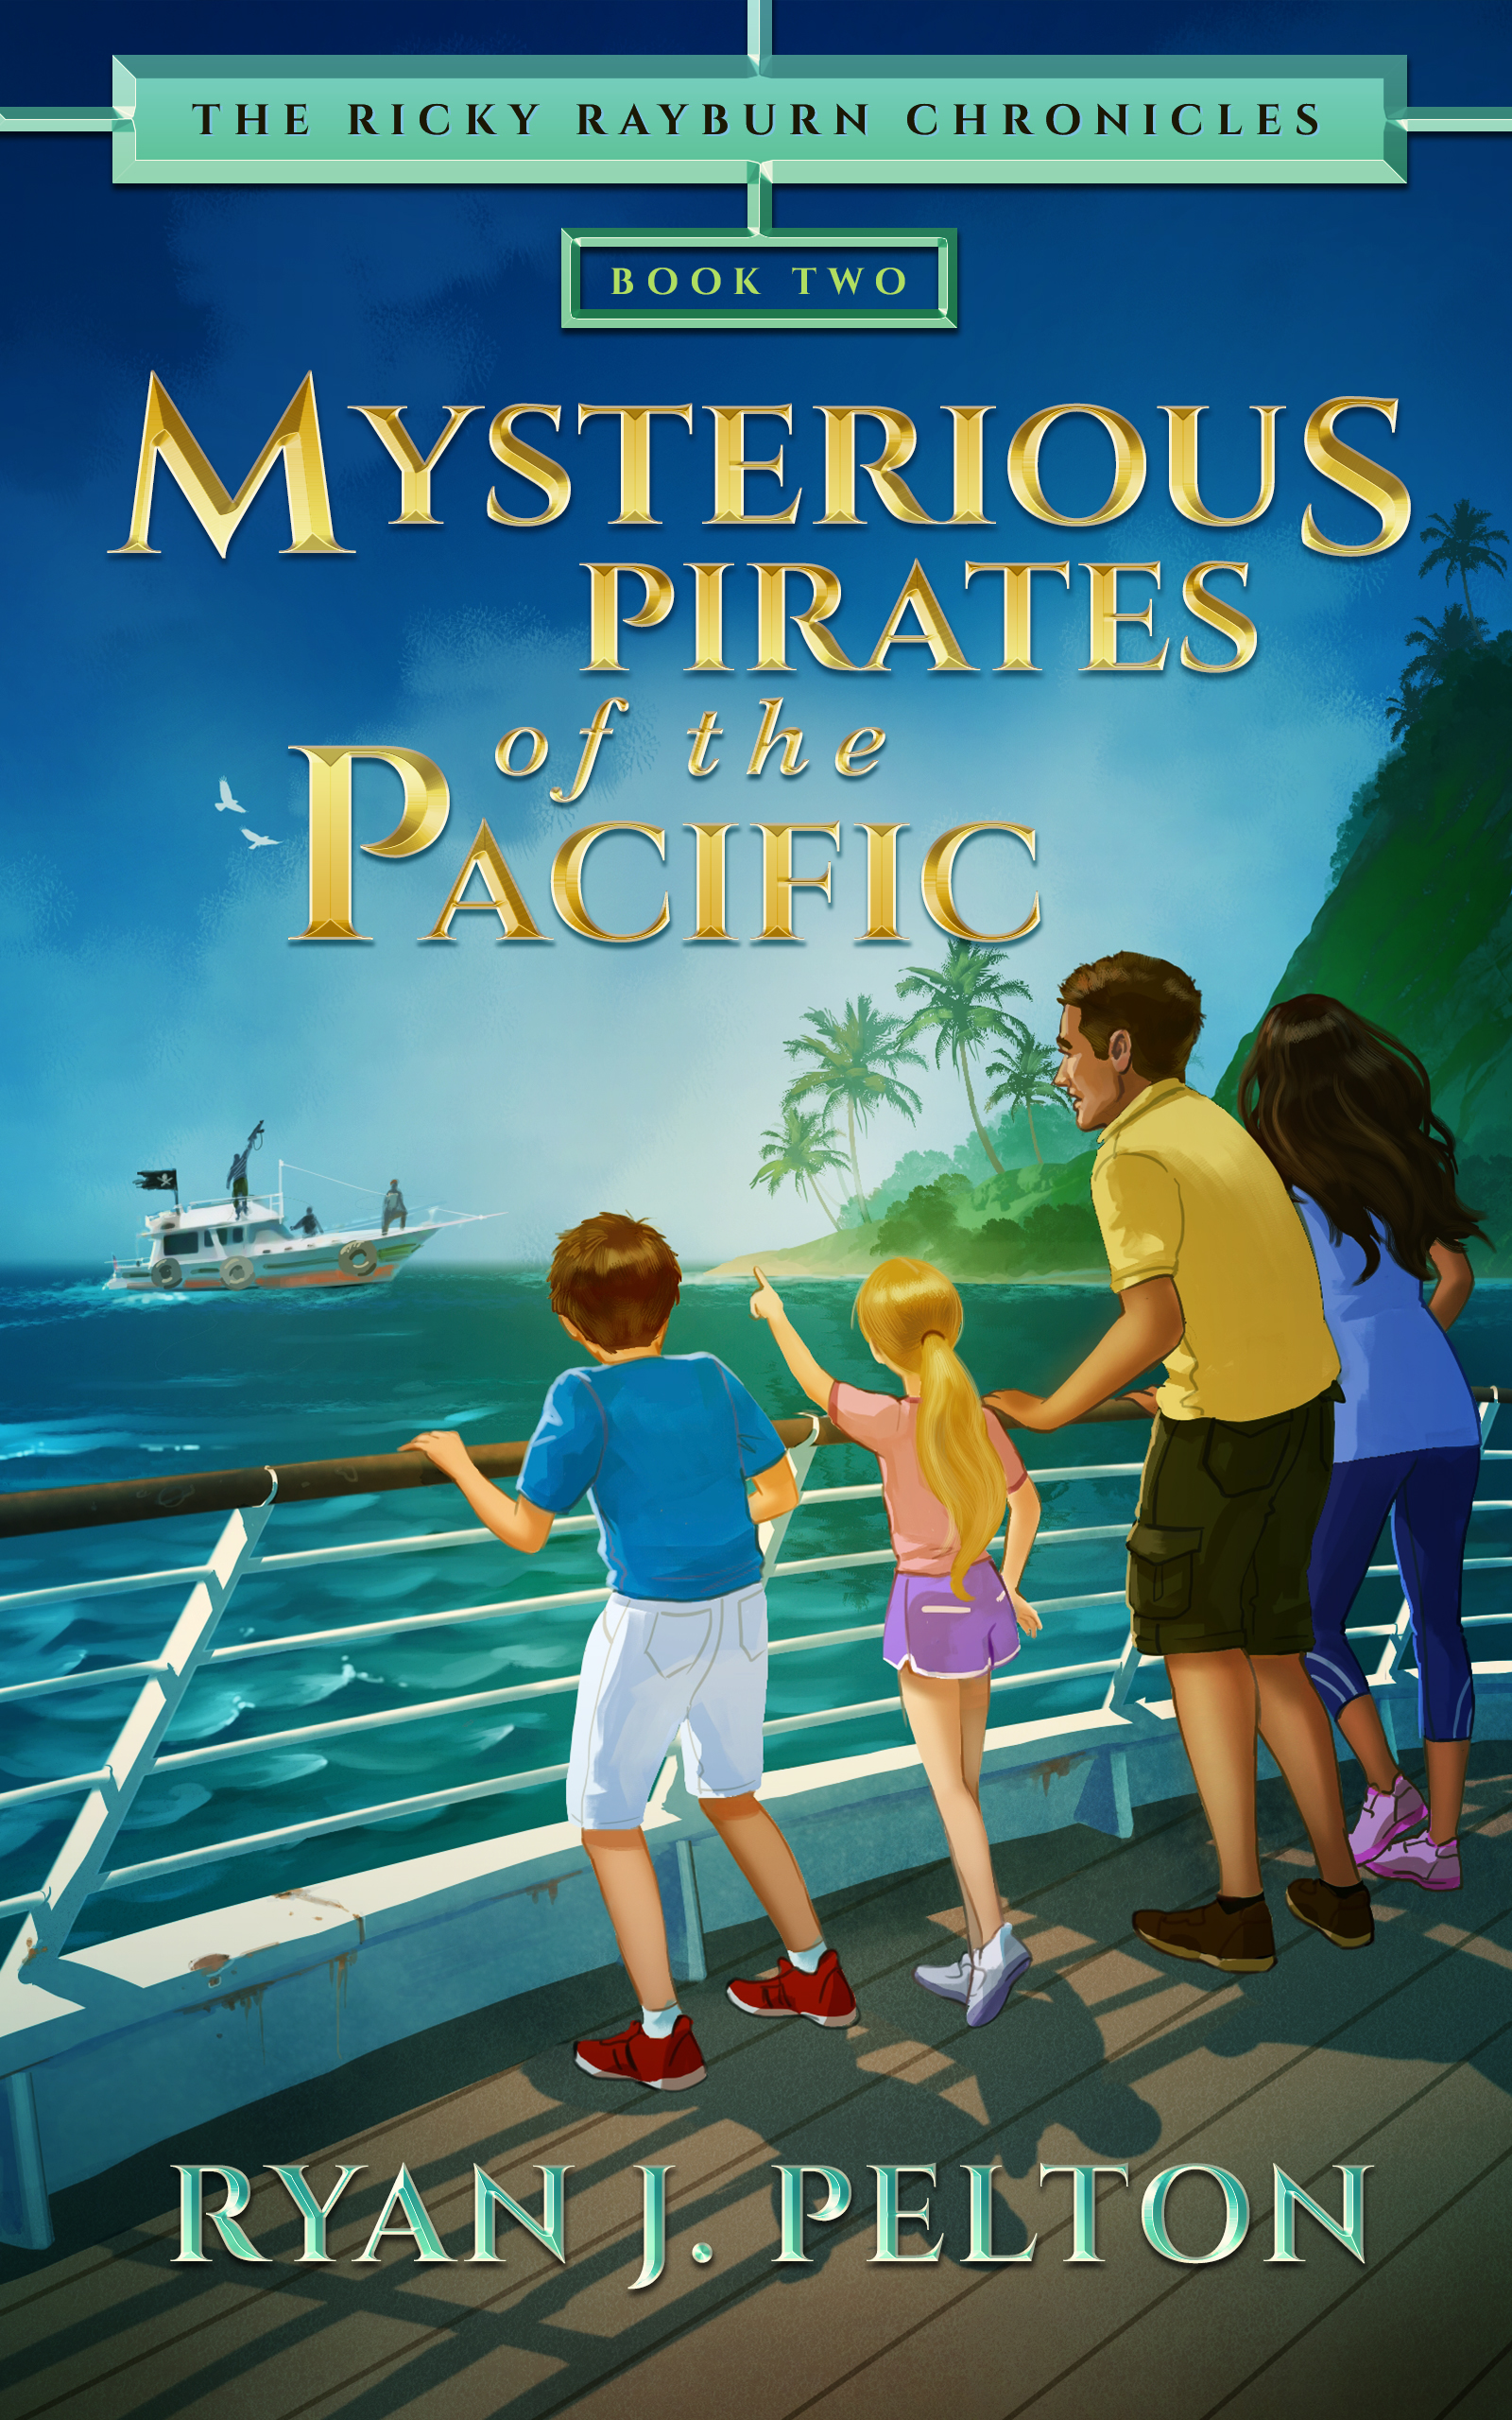 MysteriousPiratesofthePacific_cover.jpg